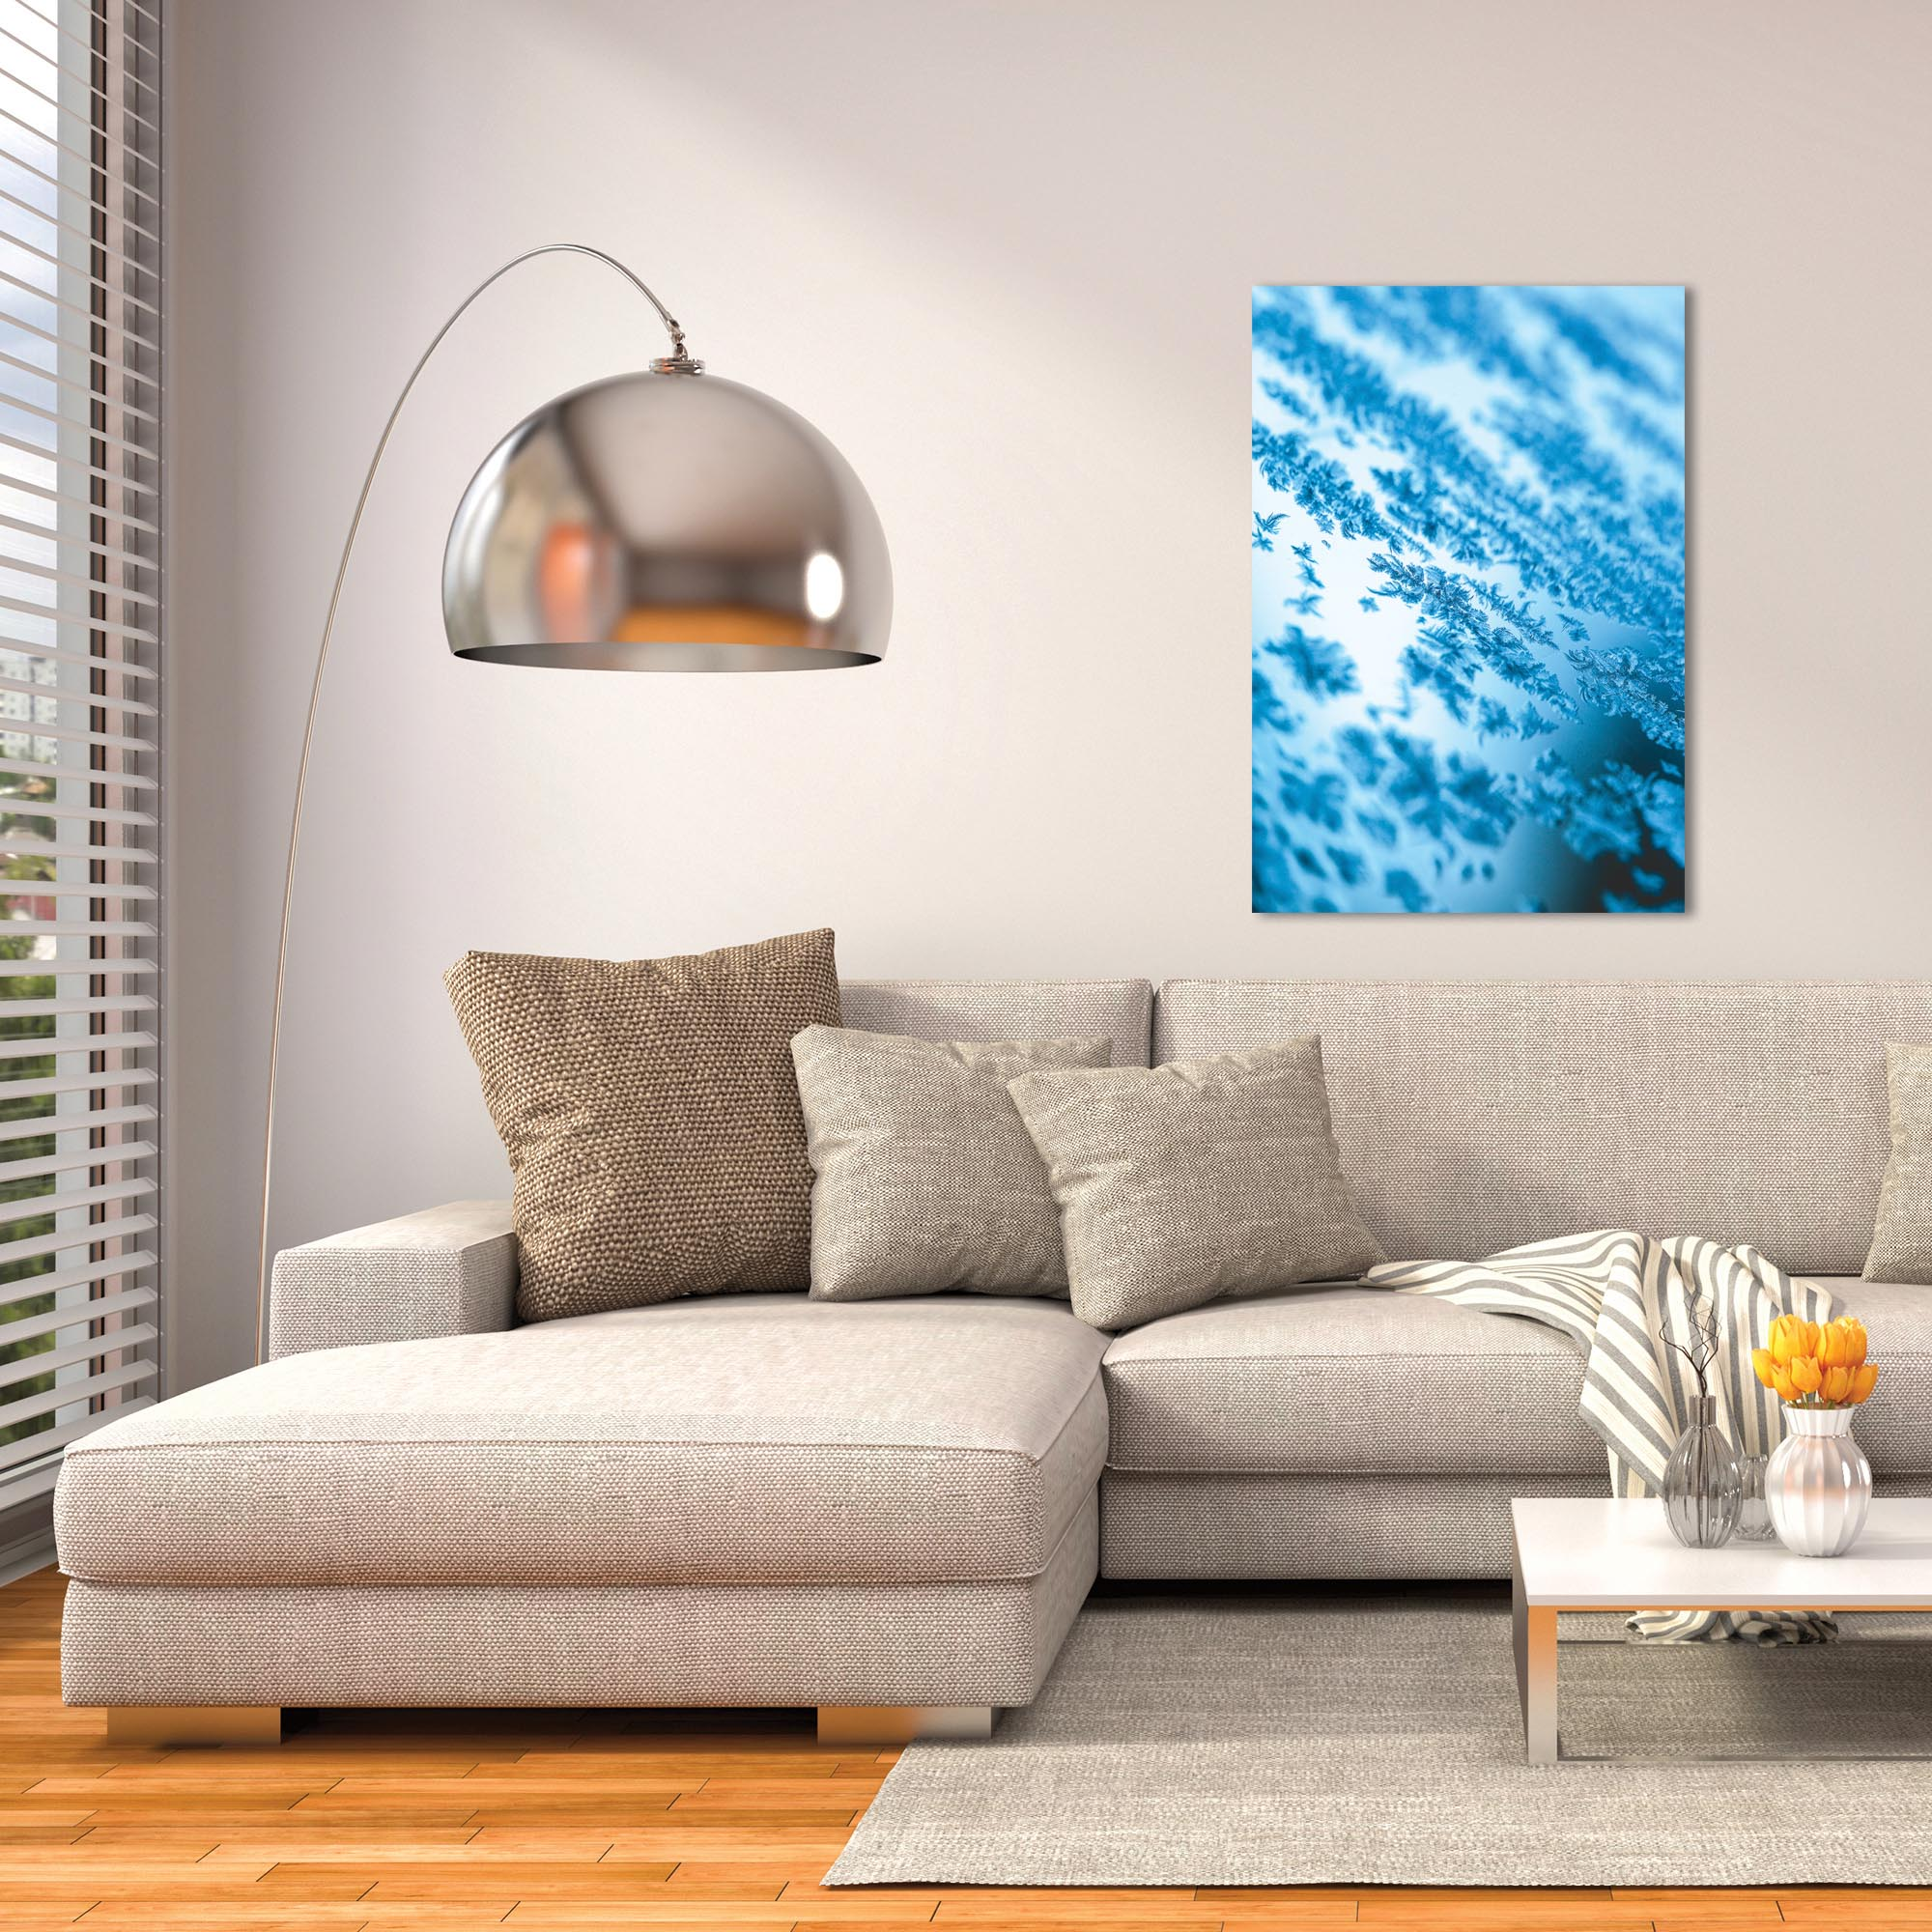 Modern Wall Art 'Icy' - Winter Decor on Metal or Plexiglass - Lifestyle View